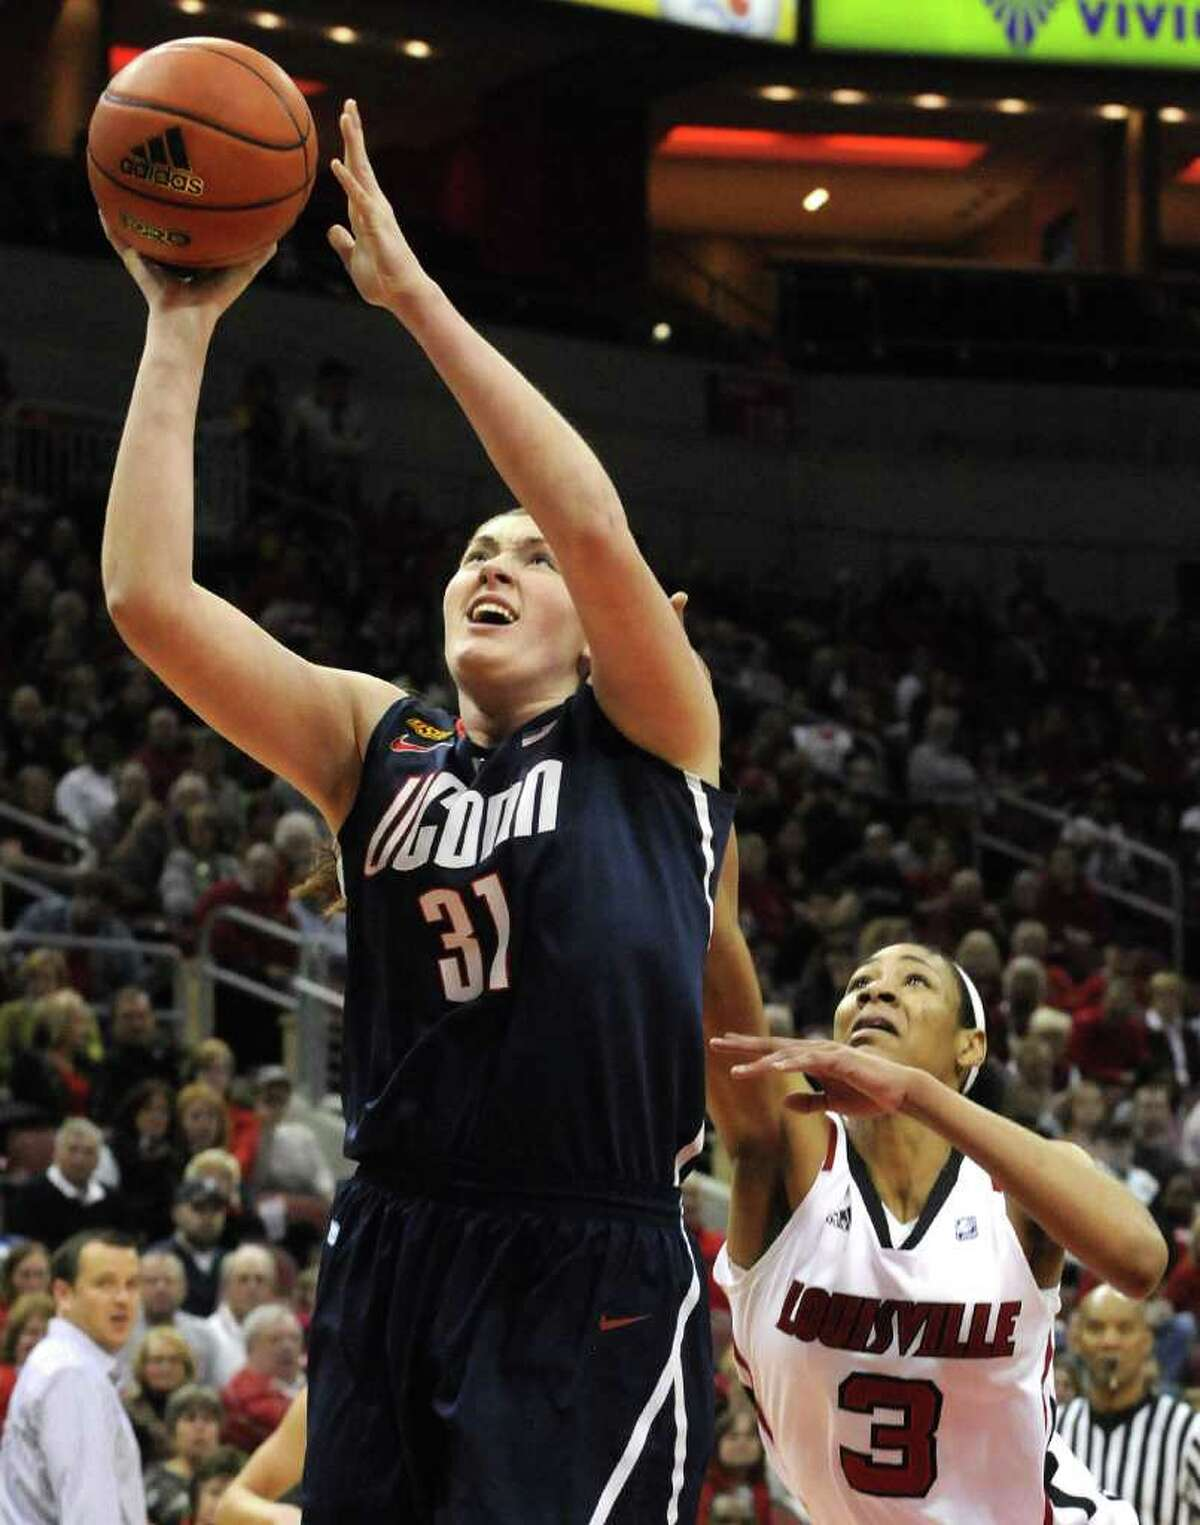 Connecticut's Stefanie Dolson (31) gets a shot off past Louisville's Sherrone Vails (3) during the first half of their NCAA college basketball game Tuesday, Feb. 7, 2012 in Louisville, Ky. (AP Photo/Timothy D. Easley)